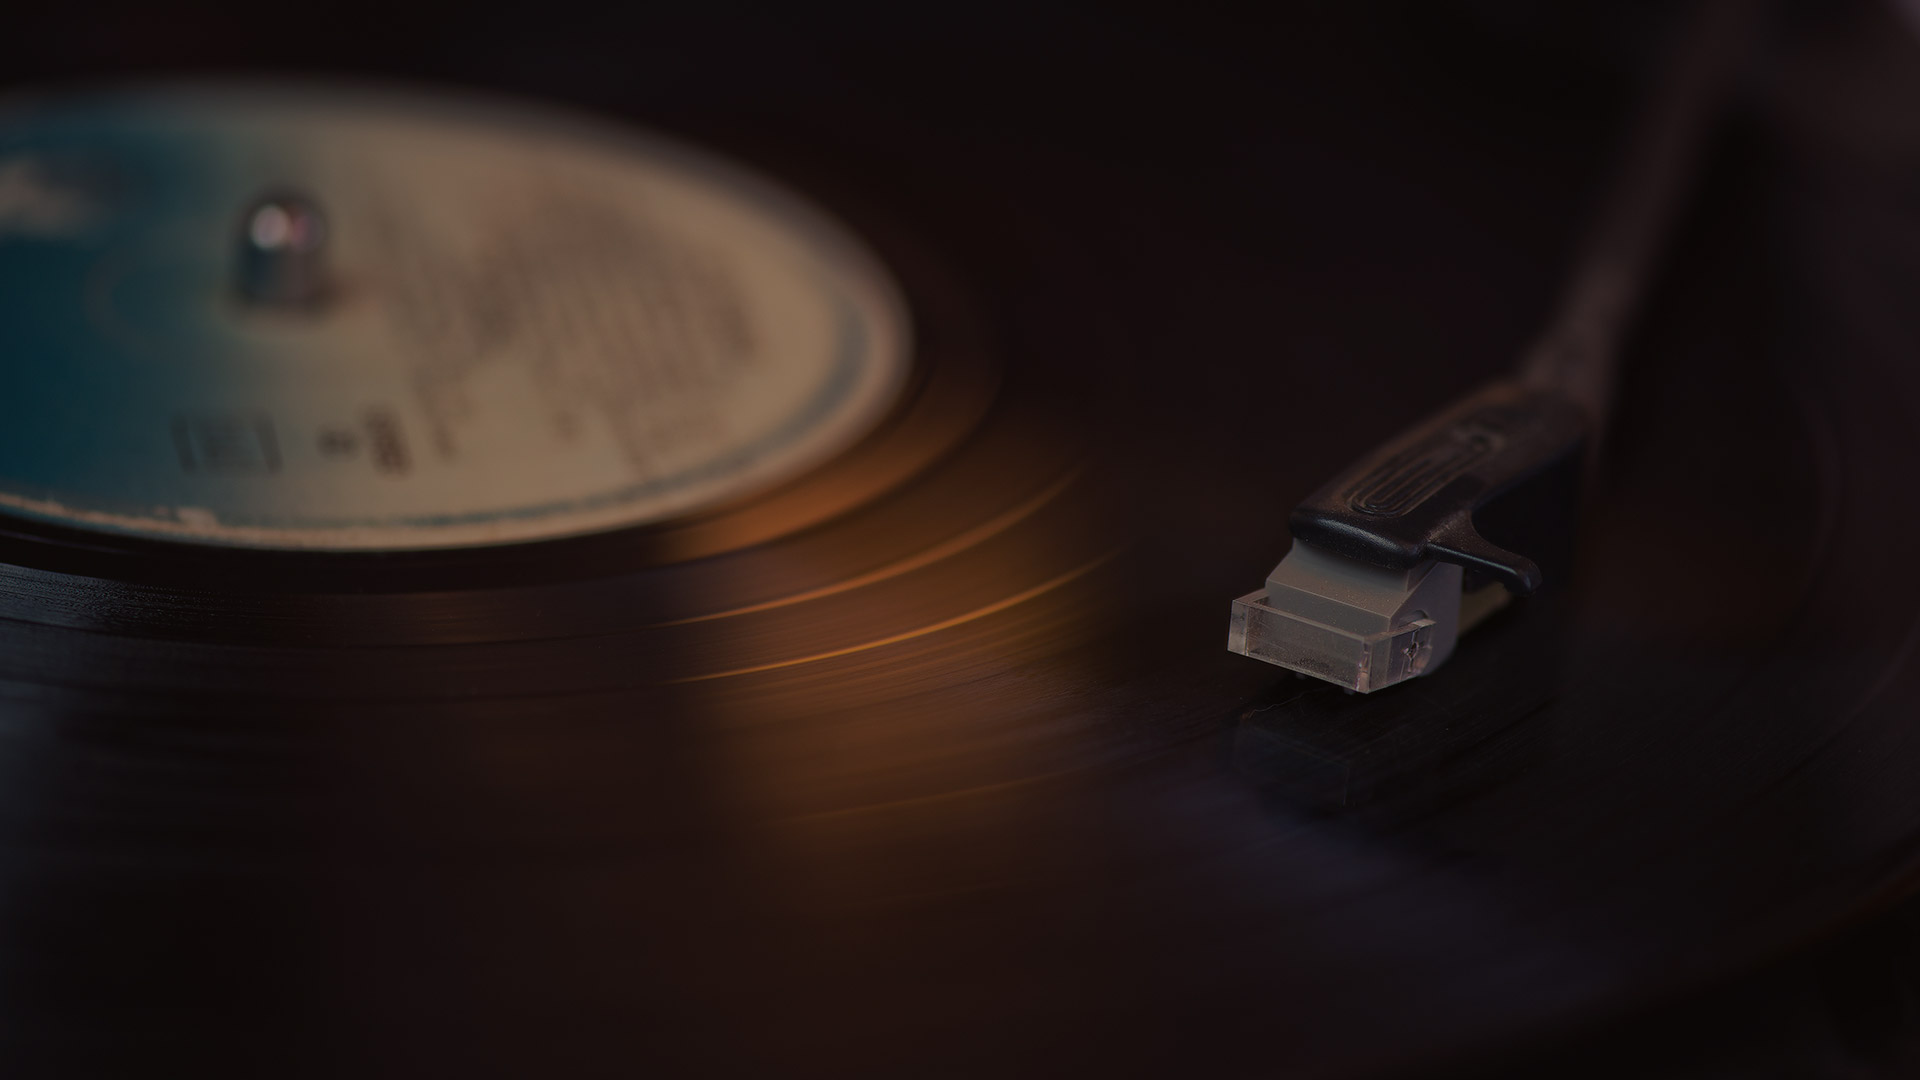 Playlists - The perfect soundtrack for any creative endeavour.